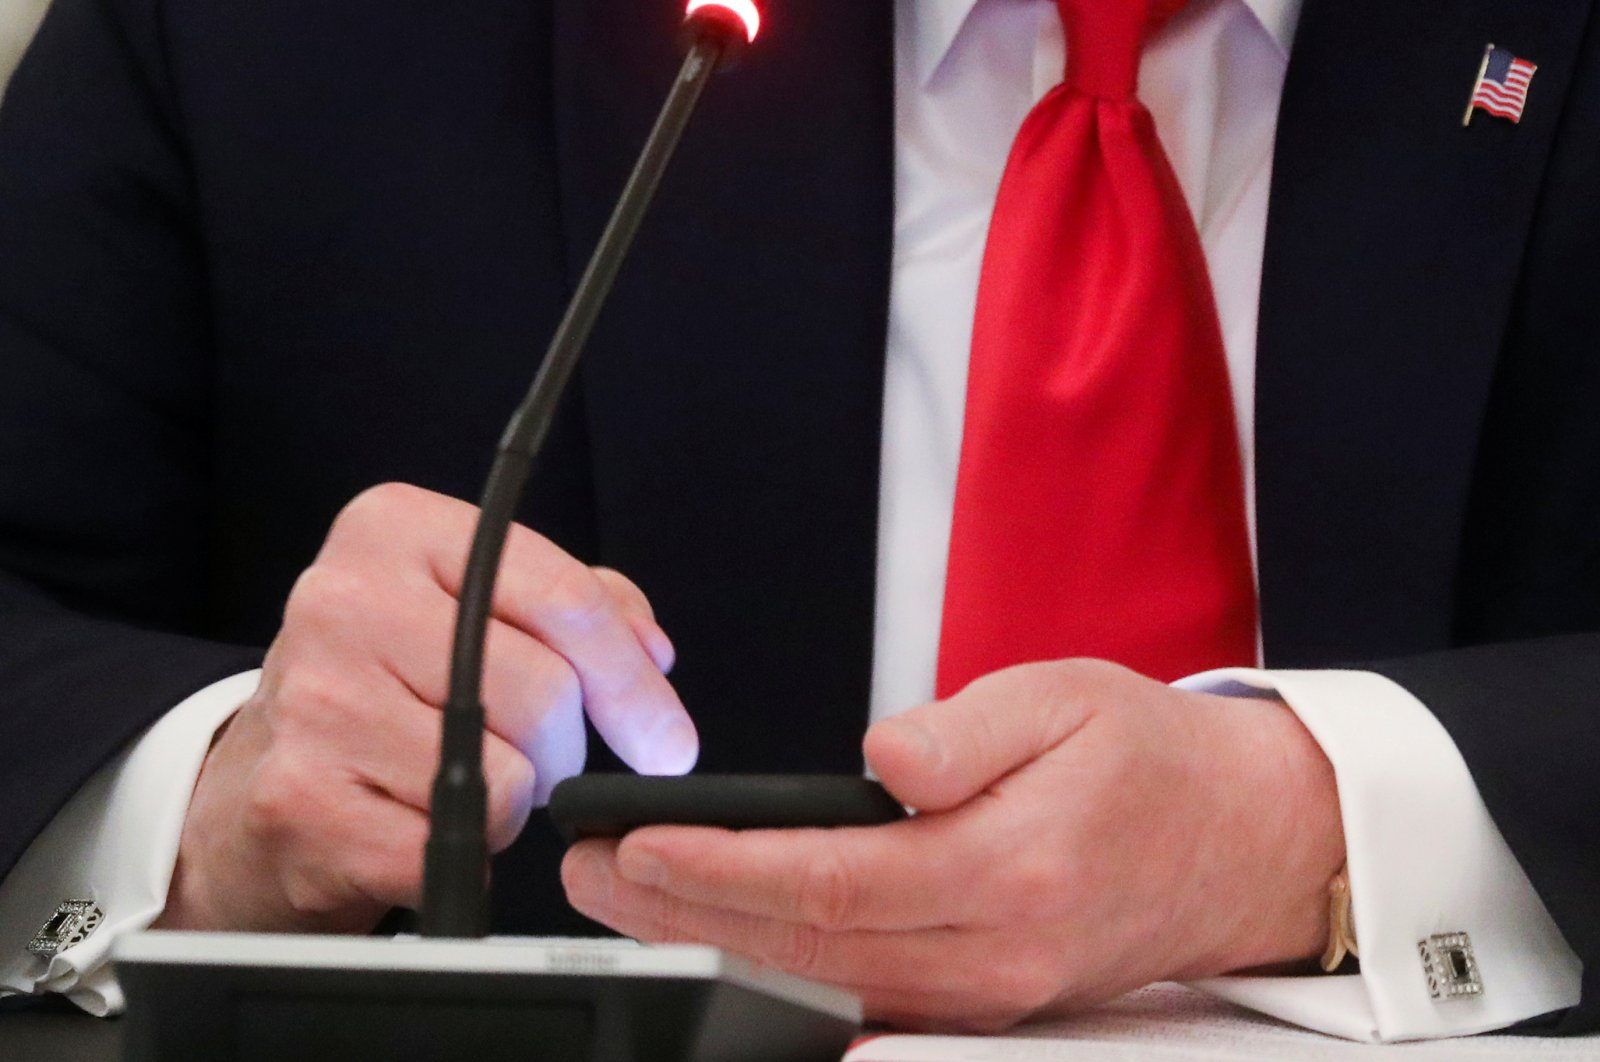 U.S. President Donald Trump taps the screen on a mobile phone at the approximate time a tweet was released from his Twitter account, during a roundtable discussion on the reopening of small businesses in the State Dining Room at the White House in Washington, U.S., June 18, 2020. (Reuters Photo)